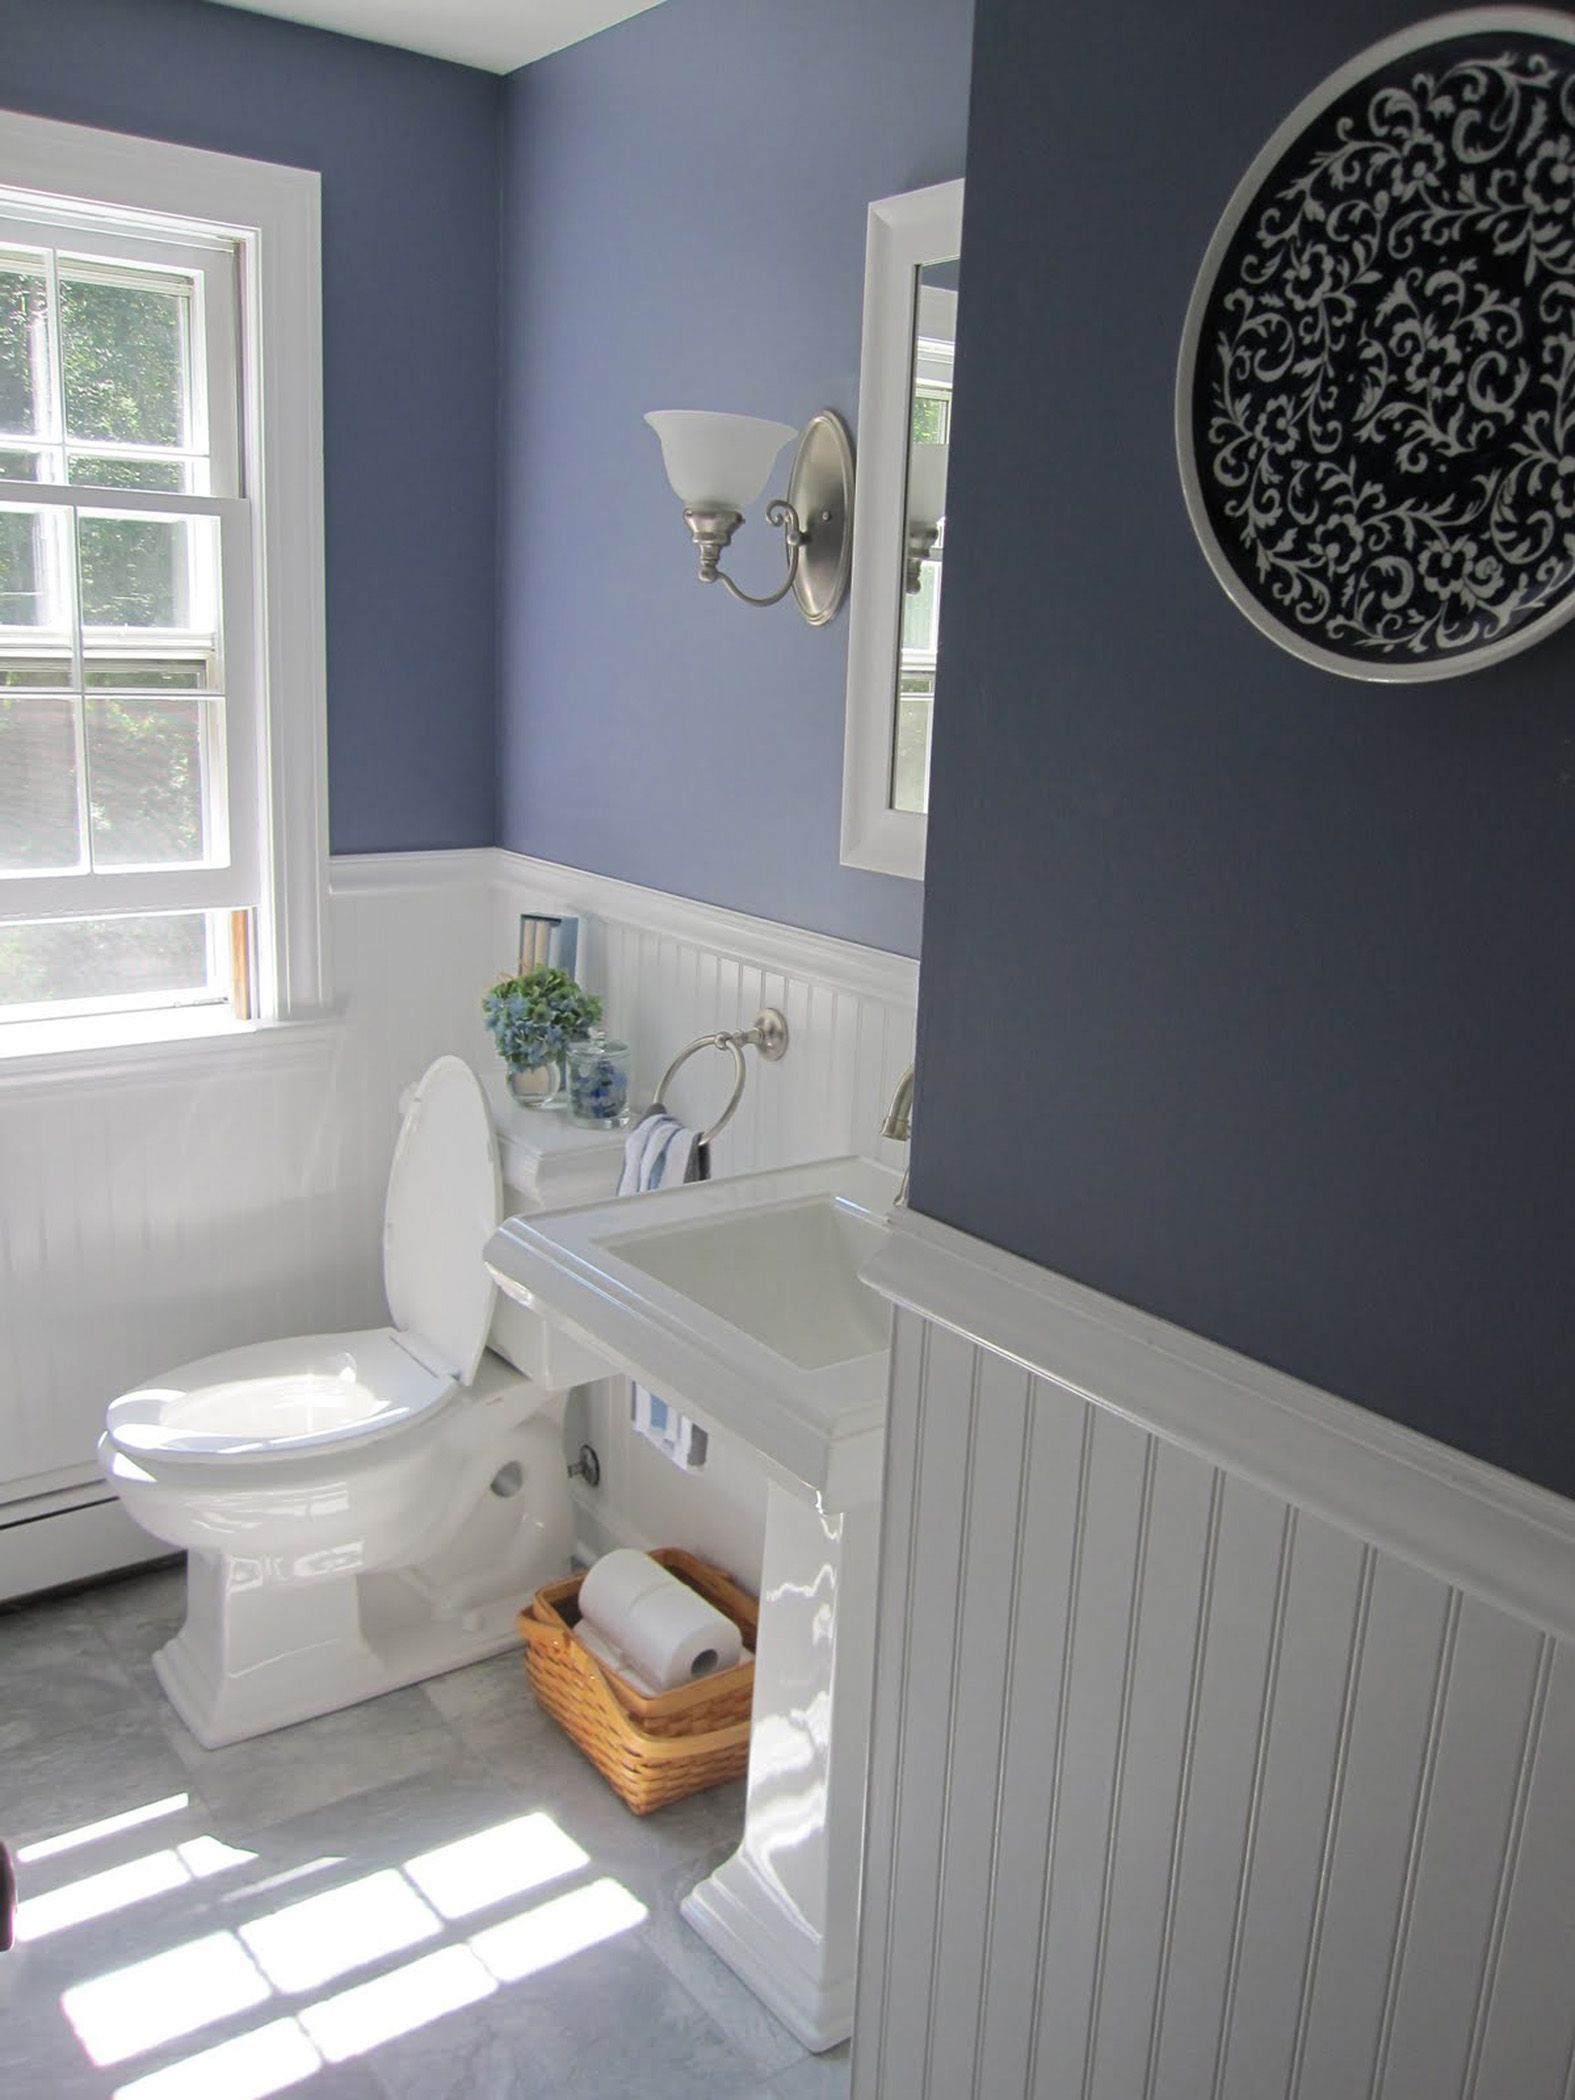 Bathroom Ideas Blue And White Part - 32: This Half Bathroom Ideas Blue - Half Bath Glass Window Brown Wooden Vanity  Beige Small Paint Small Half Bathroom Ideas Gray Half Bathroom Paint.